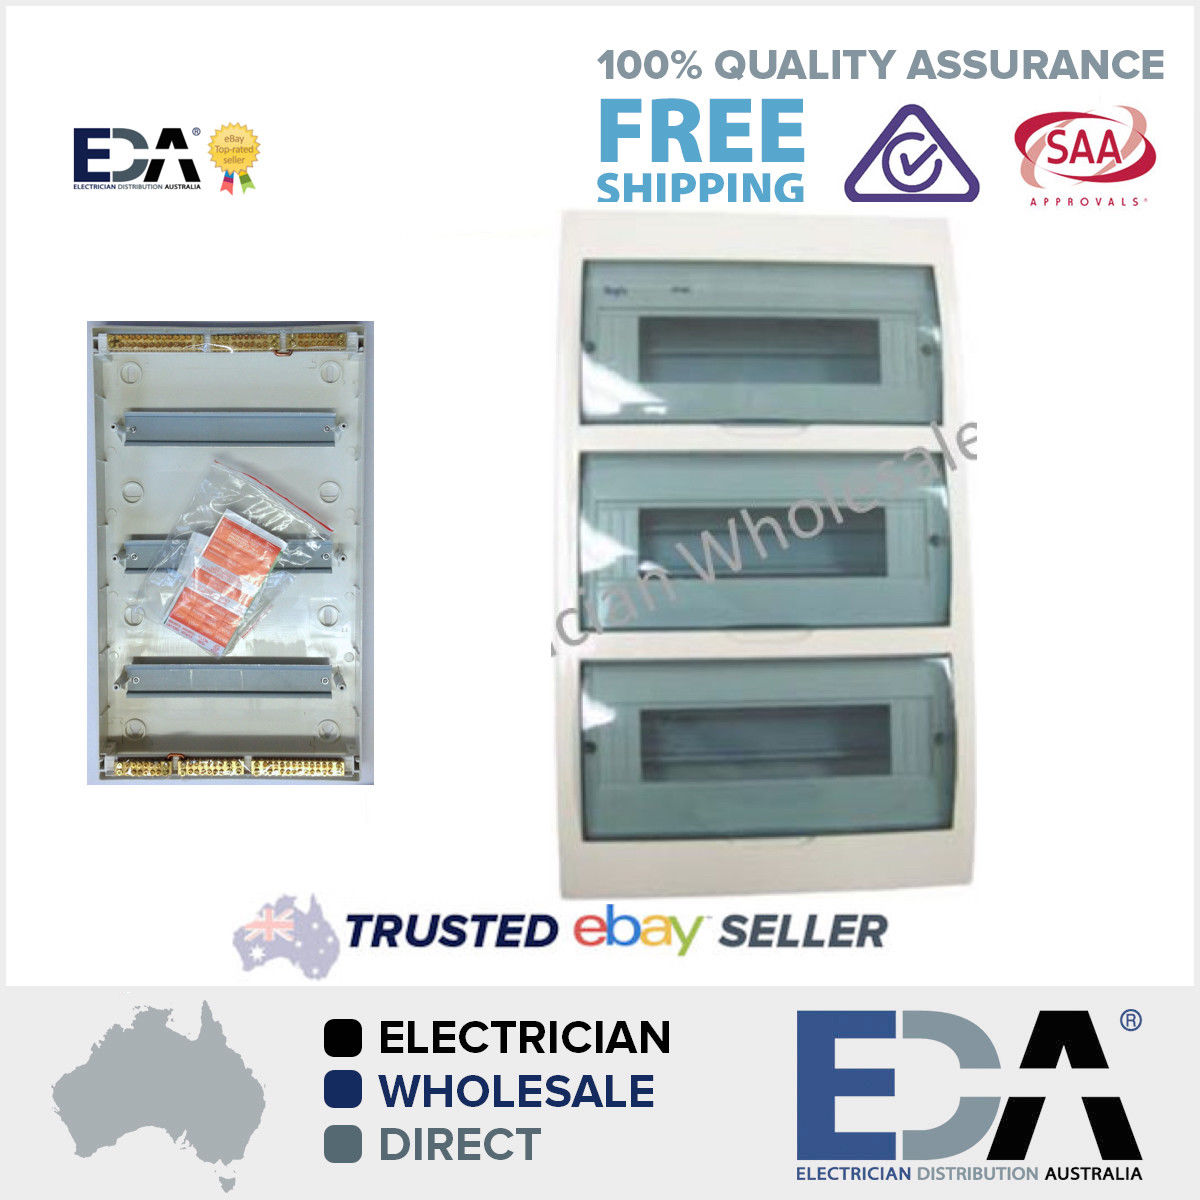 Switchboard 42 Way Pole FLUSH or Recessed Mount Distribution Board Fuse Box 263242805198 switchboard 42 way pole surface mount distribution board fuse box fuse box australia at gsmportal.co